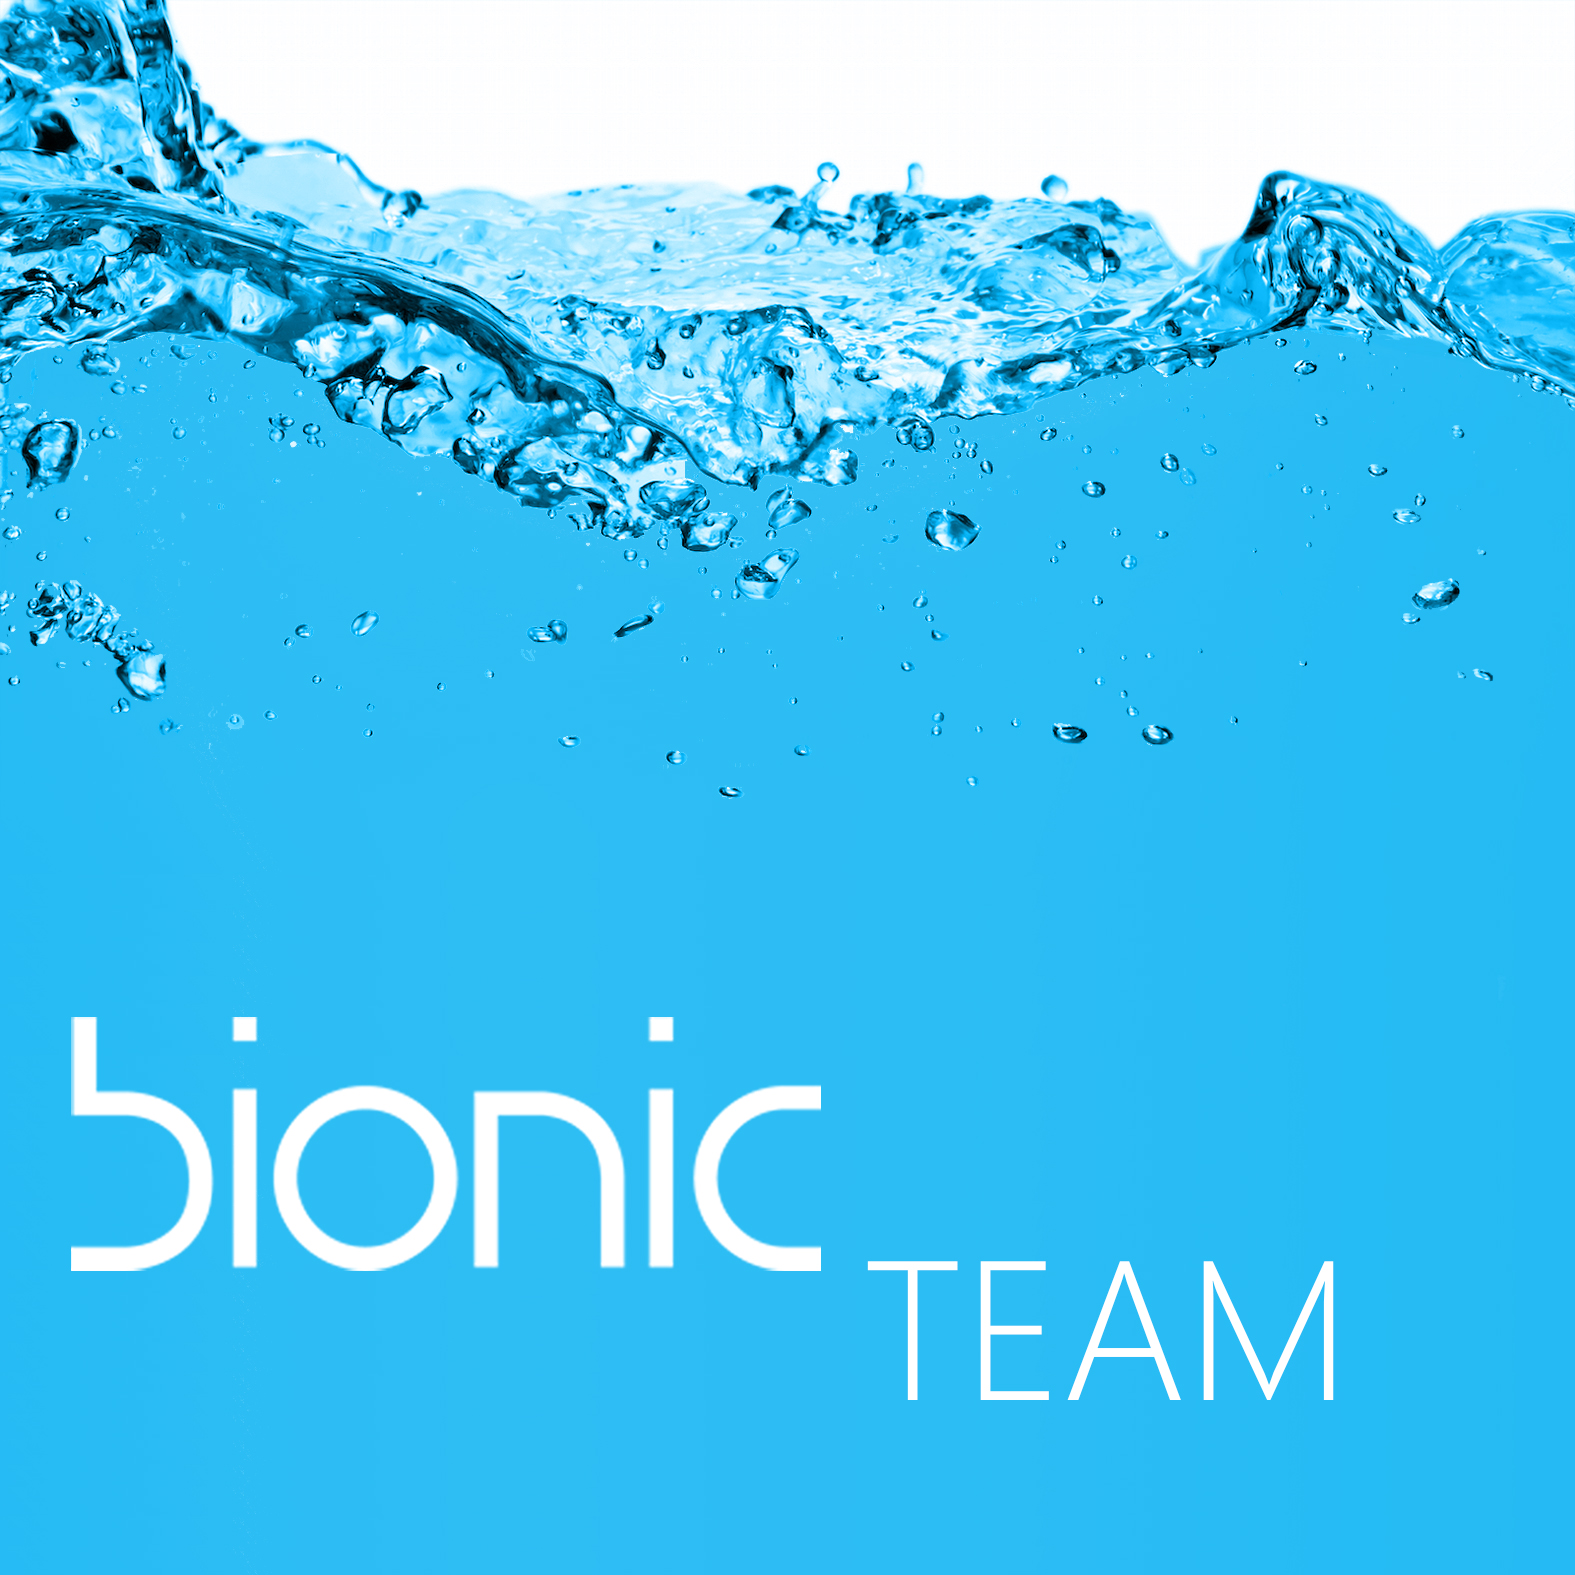 Copy of RBD - BionicTeam Logo.jpg